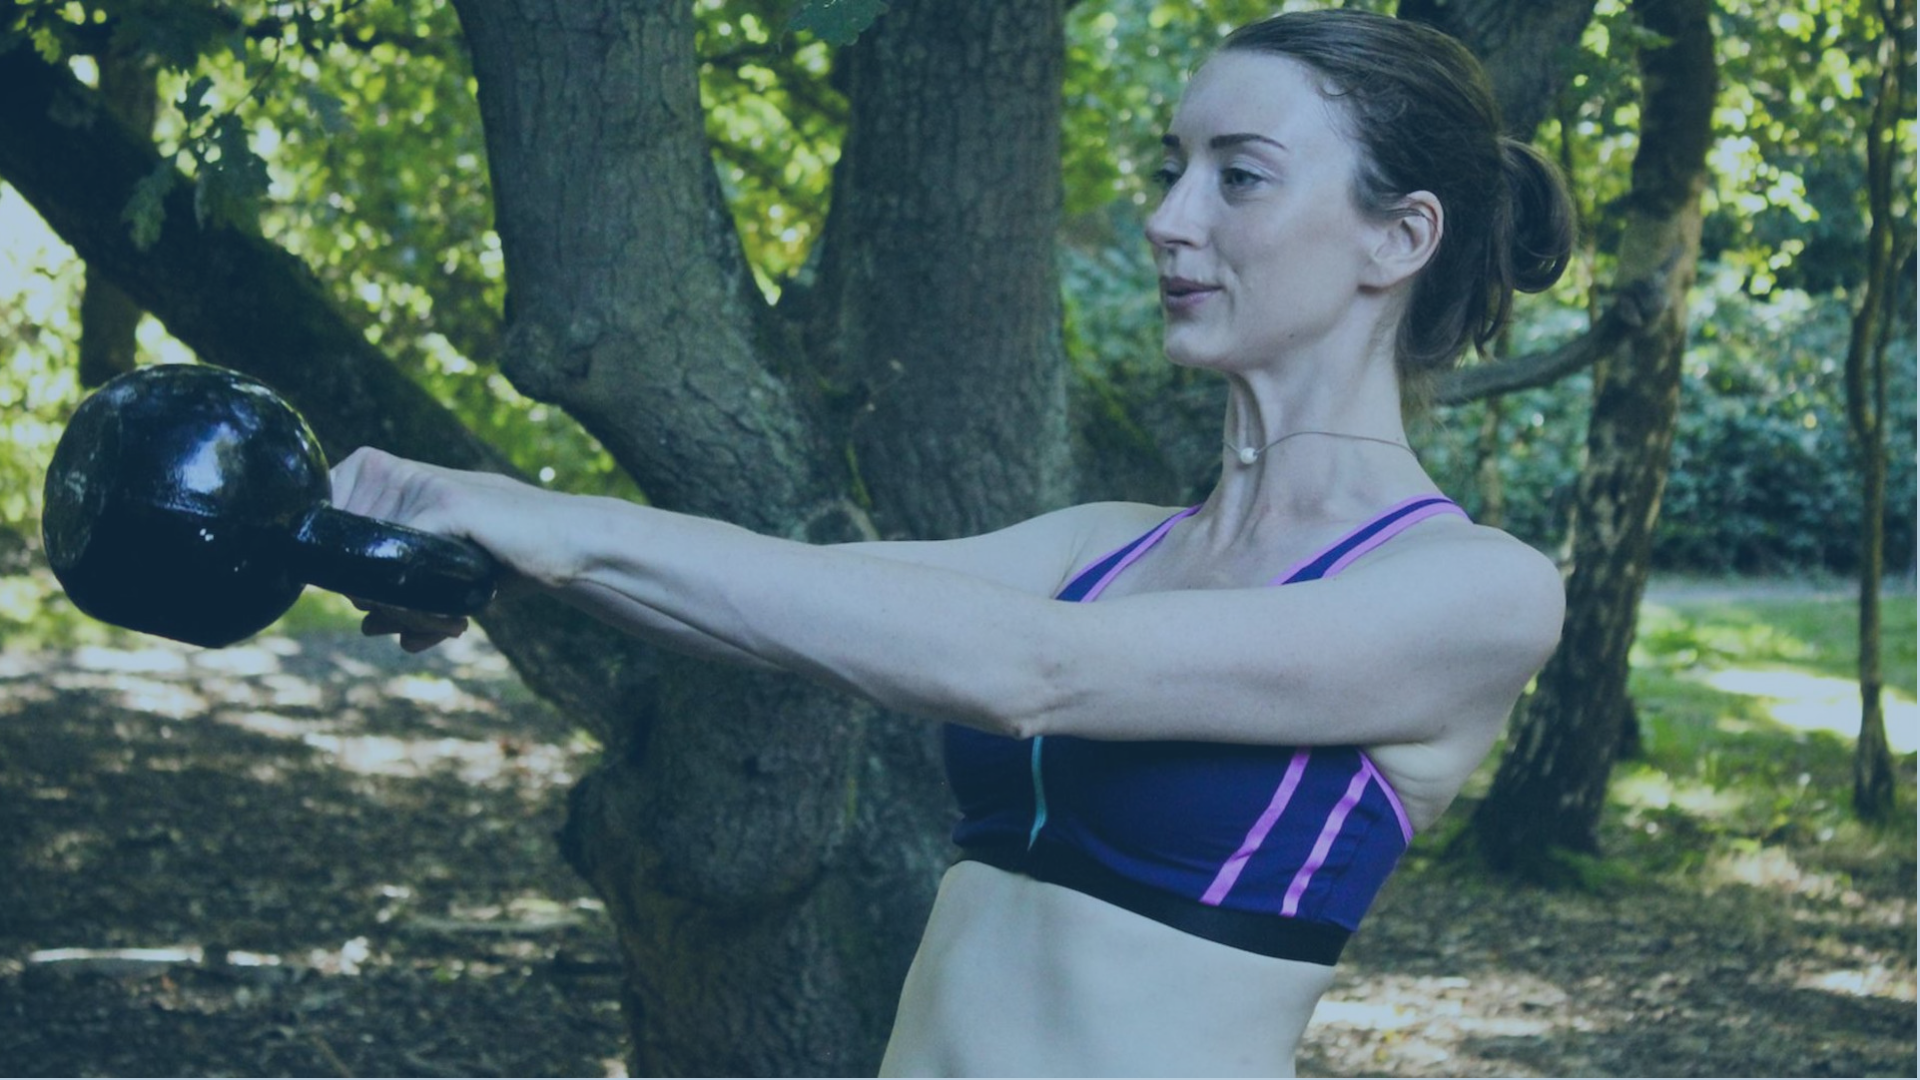 Putney Personal Training - Hounds Of Health - Putney, London